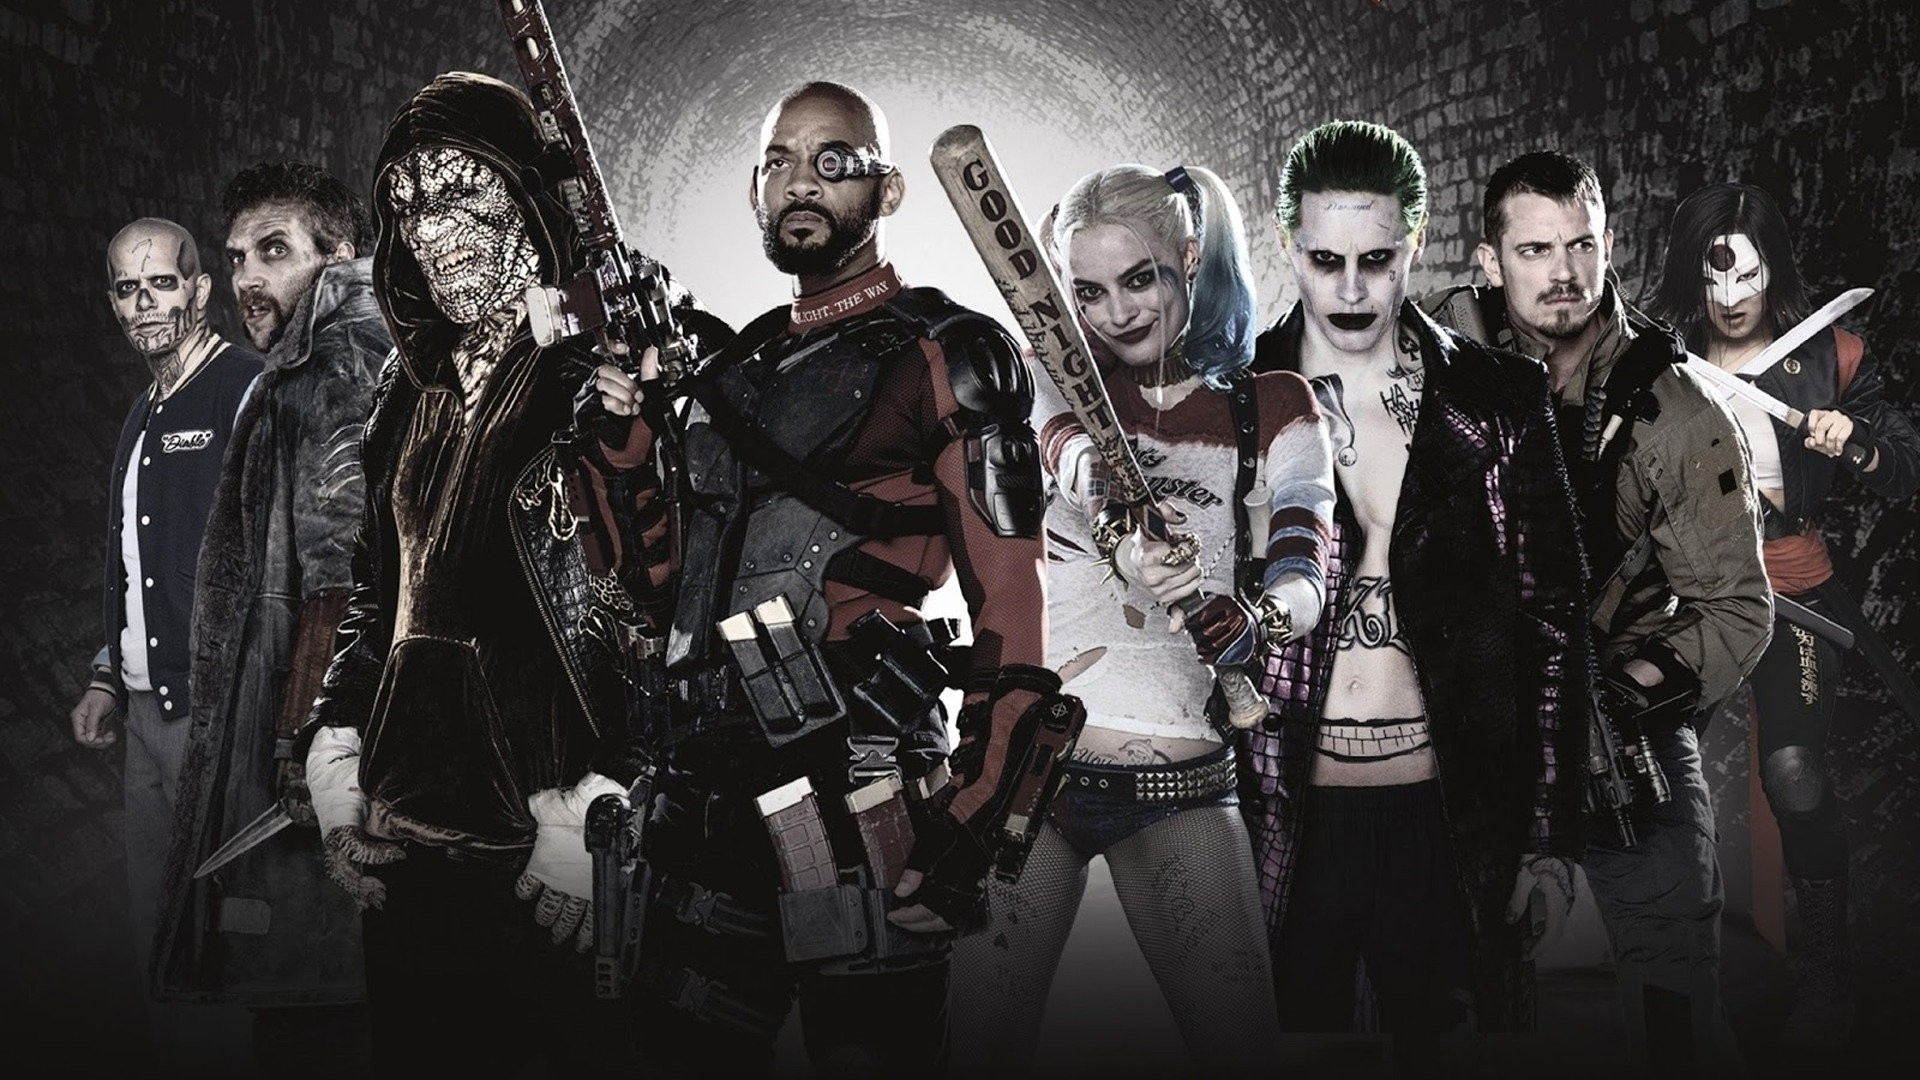 suicide squad wallpaper hd (71+ images)